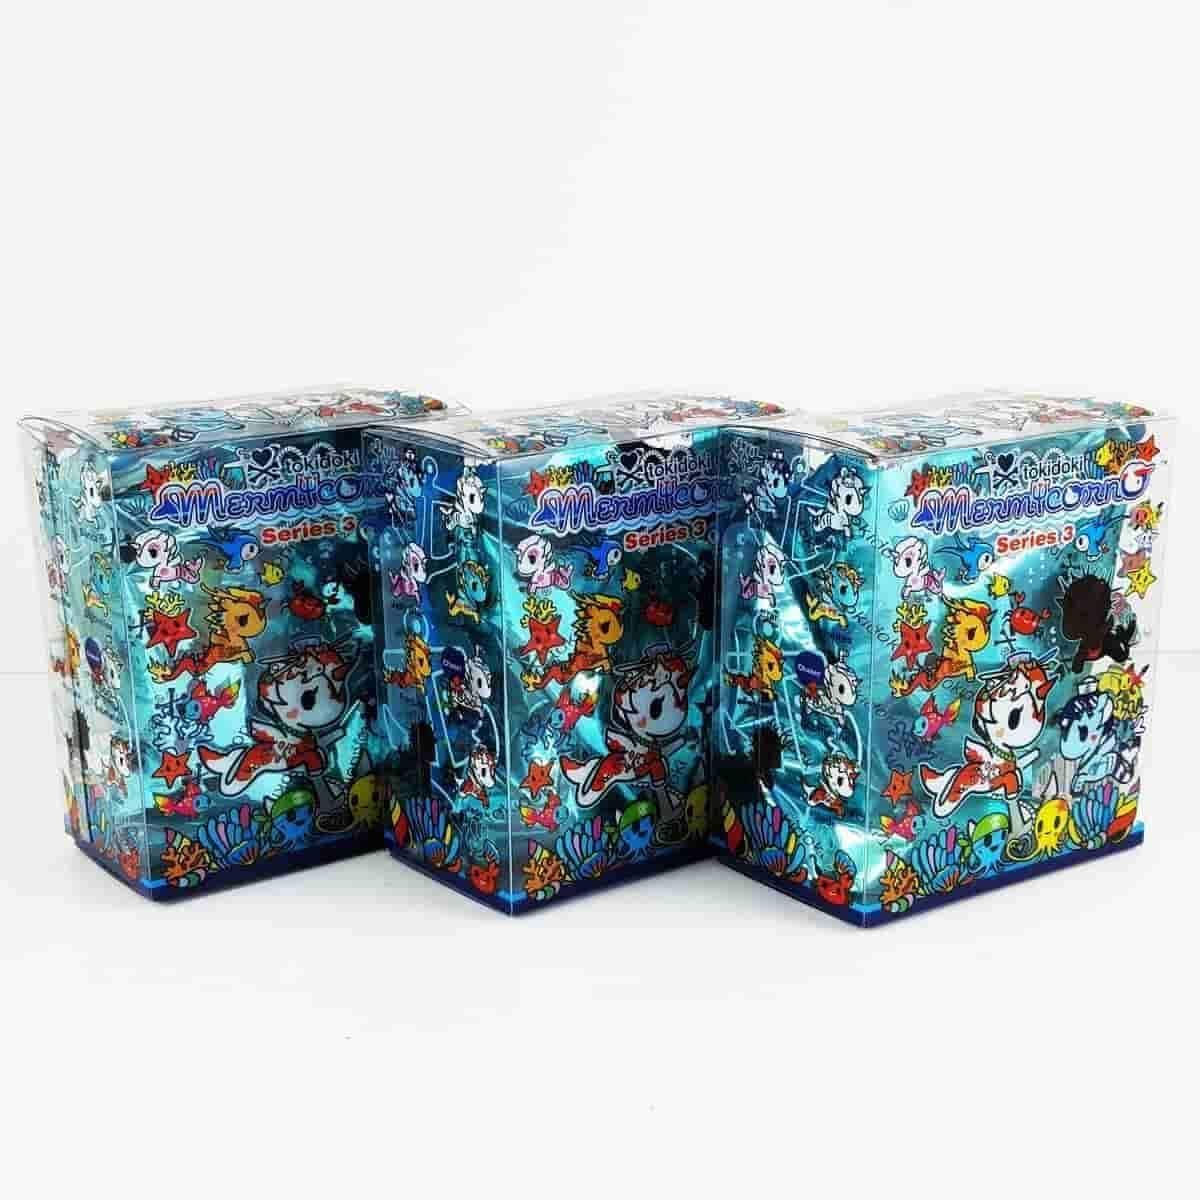 Mermicorno Series 3 Blind Box (3 Pack) by TokiDoki - iamRetro.com